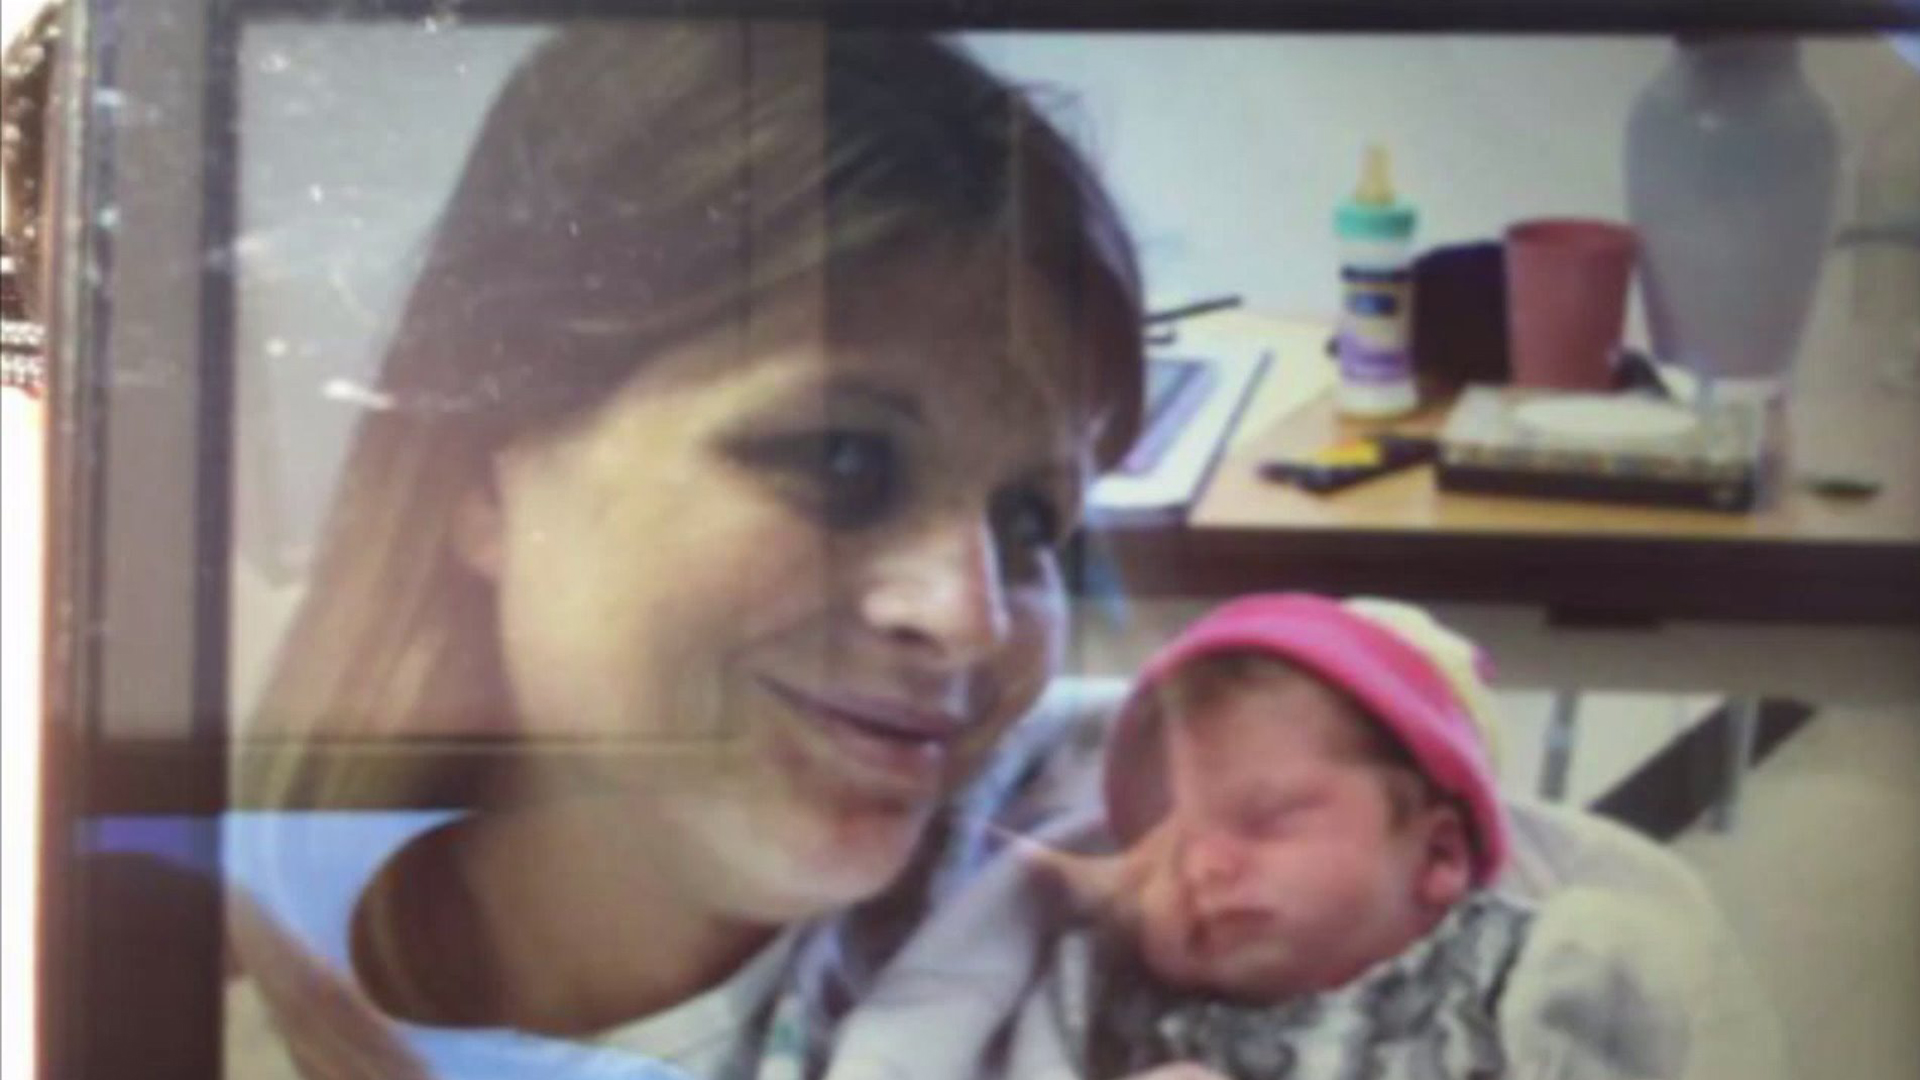 Amber Pangborn is seen here with her newborn daughter, whom she gave birth to in the Los in Plumas National Forest. (Credit: KTXL)